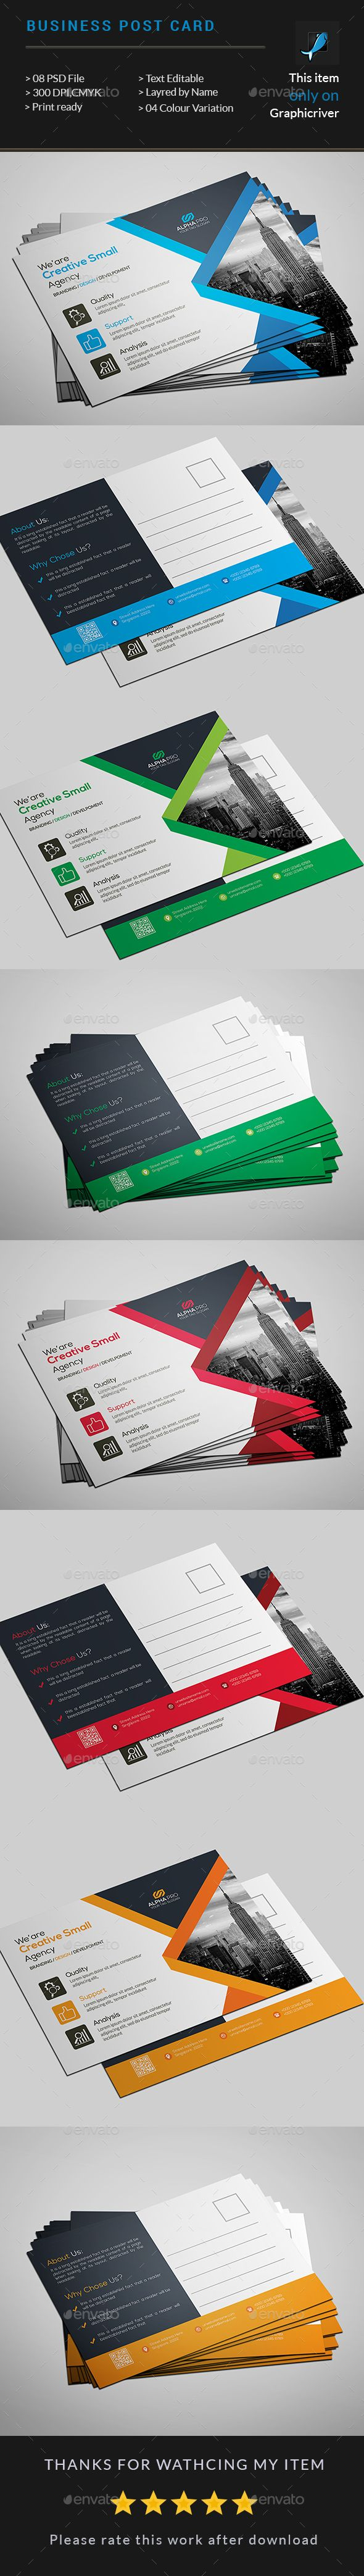 Corporate Post Card — Photoshop PSD #studio #color • Available here → https://graphicriver.net/item/corporate-post-card/17675397?ref=pxcr